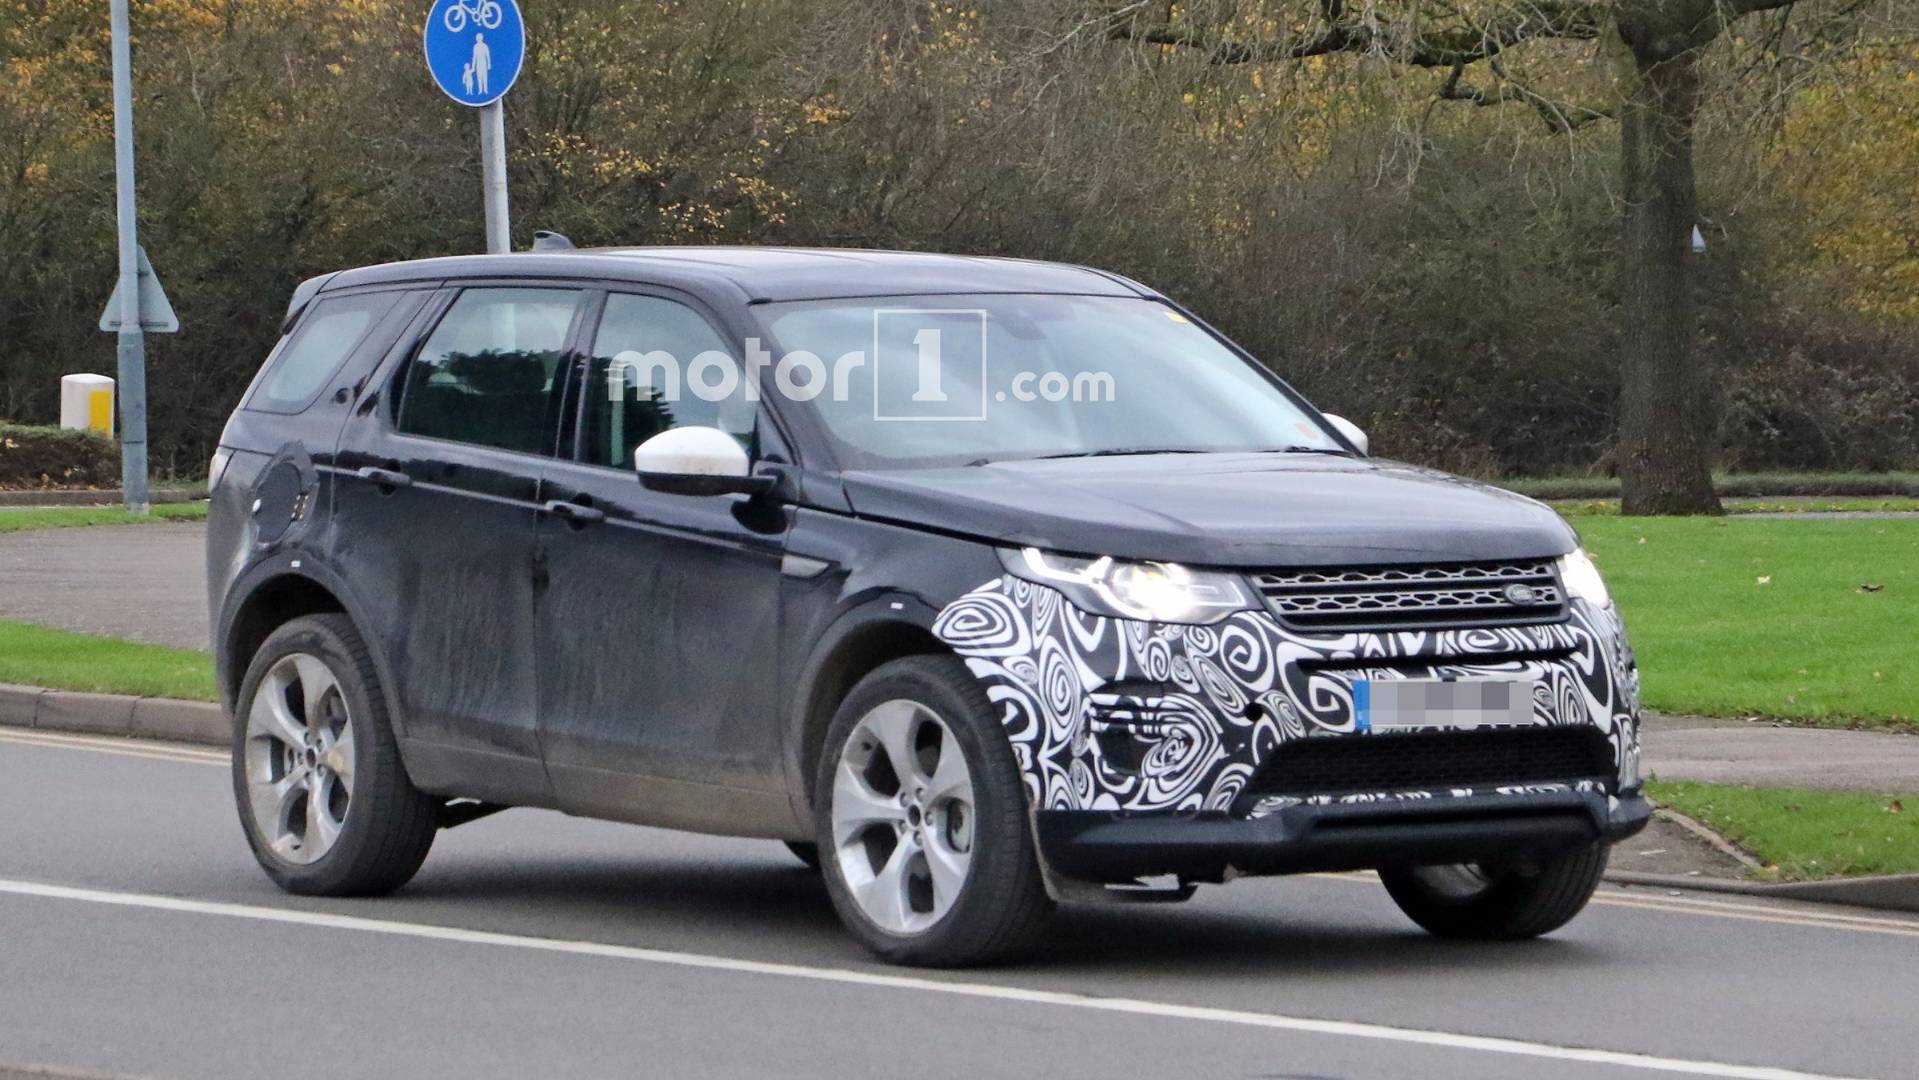 2020 Land Rover Discovery Is Built On The New Architecture >> Land Rover Caught Already Working On Next Gen Discovery Sport